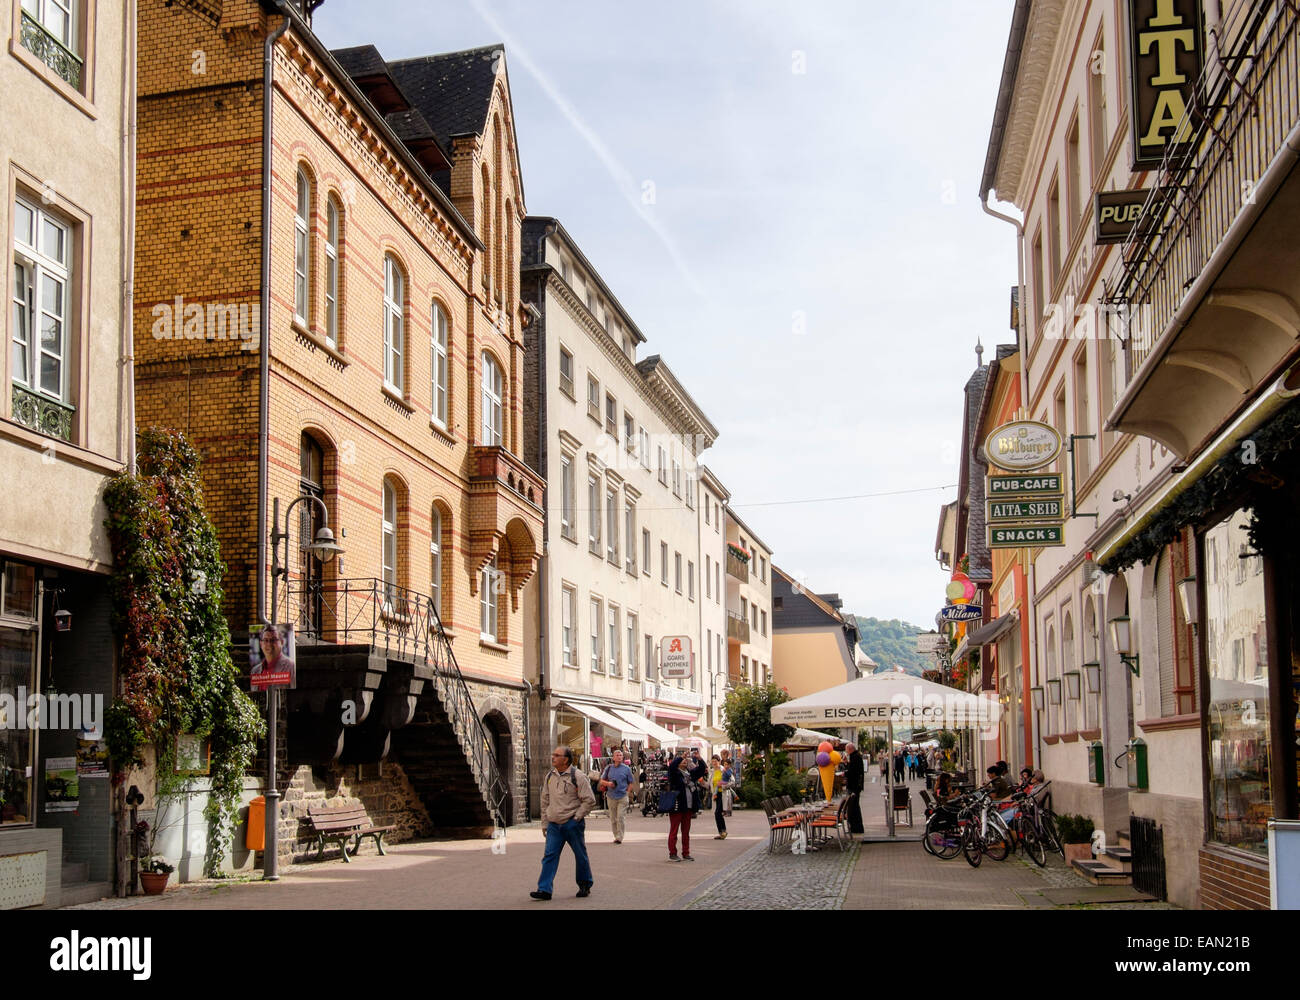 Street scene with cafes and bars in the old town centre of Sankt Goar, Rhineland-Palatinate, Germany, Europe. - Stock Image